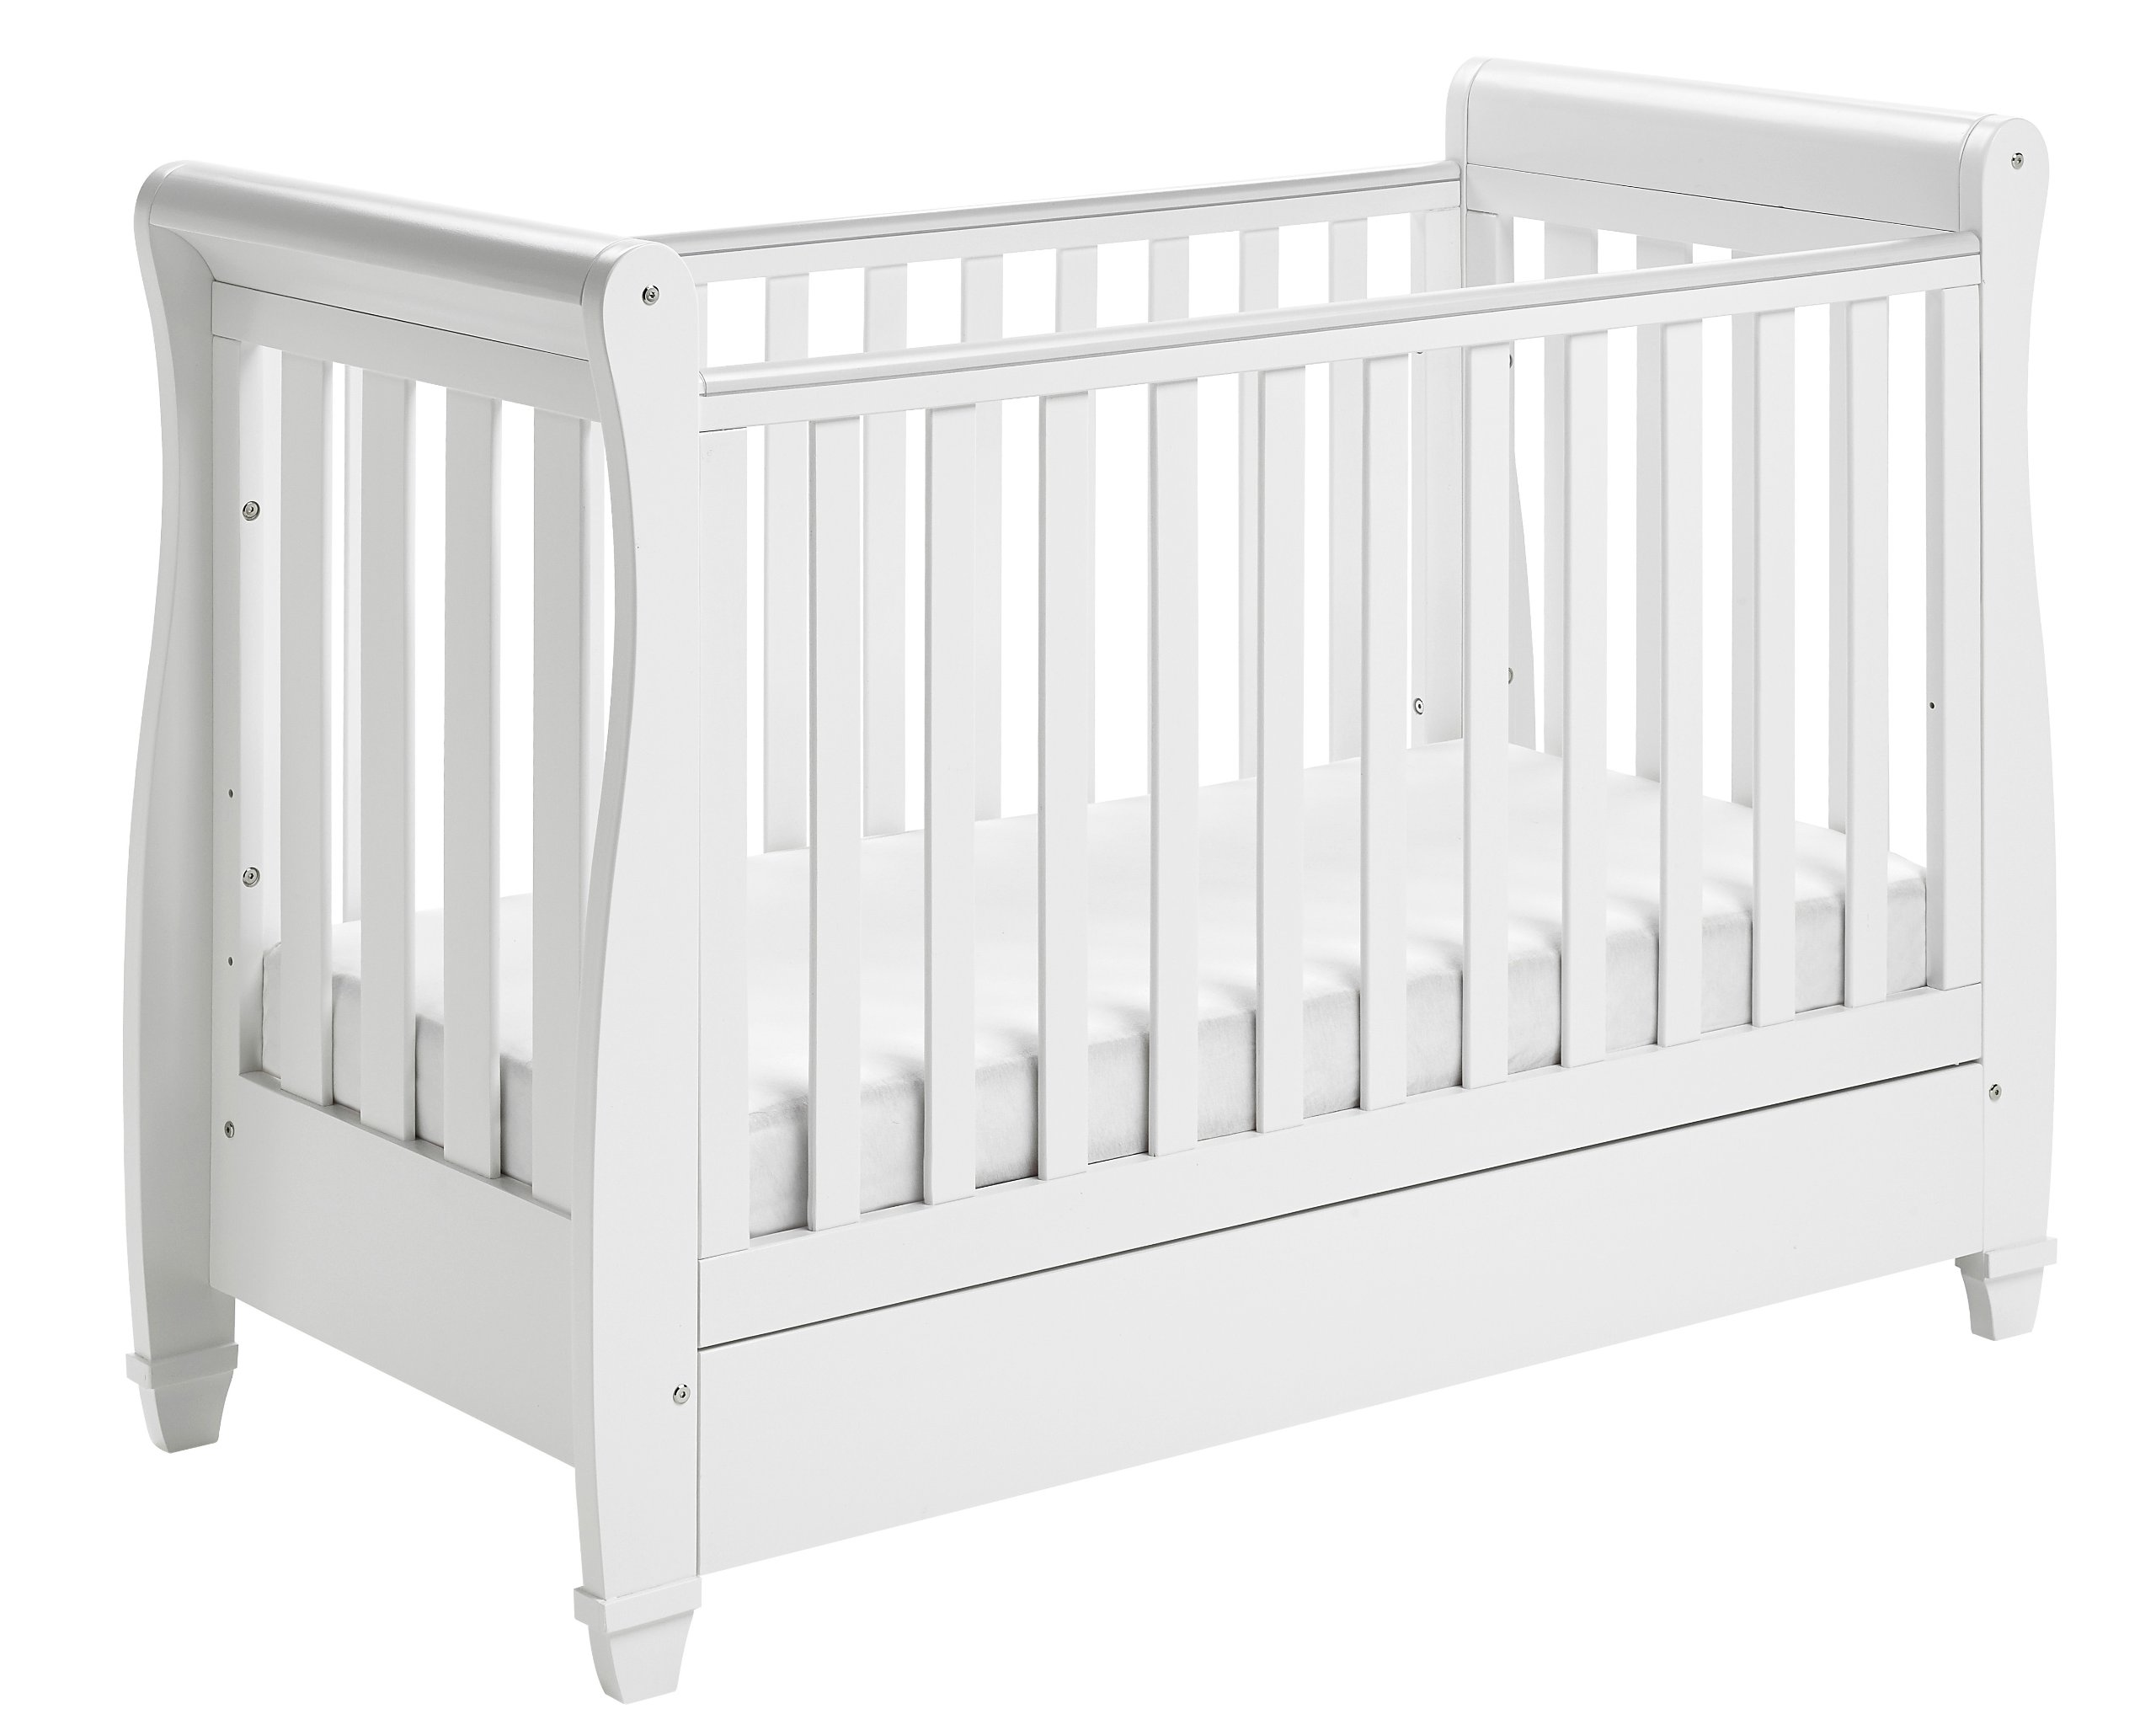 Babymore Eva Sleigh Cot Bed Dropside with Drawer (White Finish) + FOAM MATTRESS  Easily convert to junior bed/sofa/day bed, Meet British and European safety standards; Single handed drop side mechanism allow easy access to your baby Protective Teething rail on top of both sides. Full drawer on runner provide extra storage 3